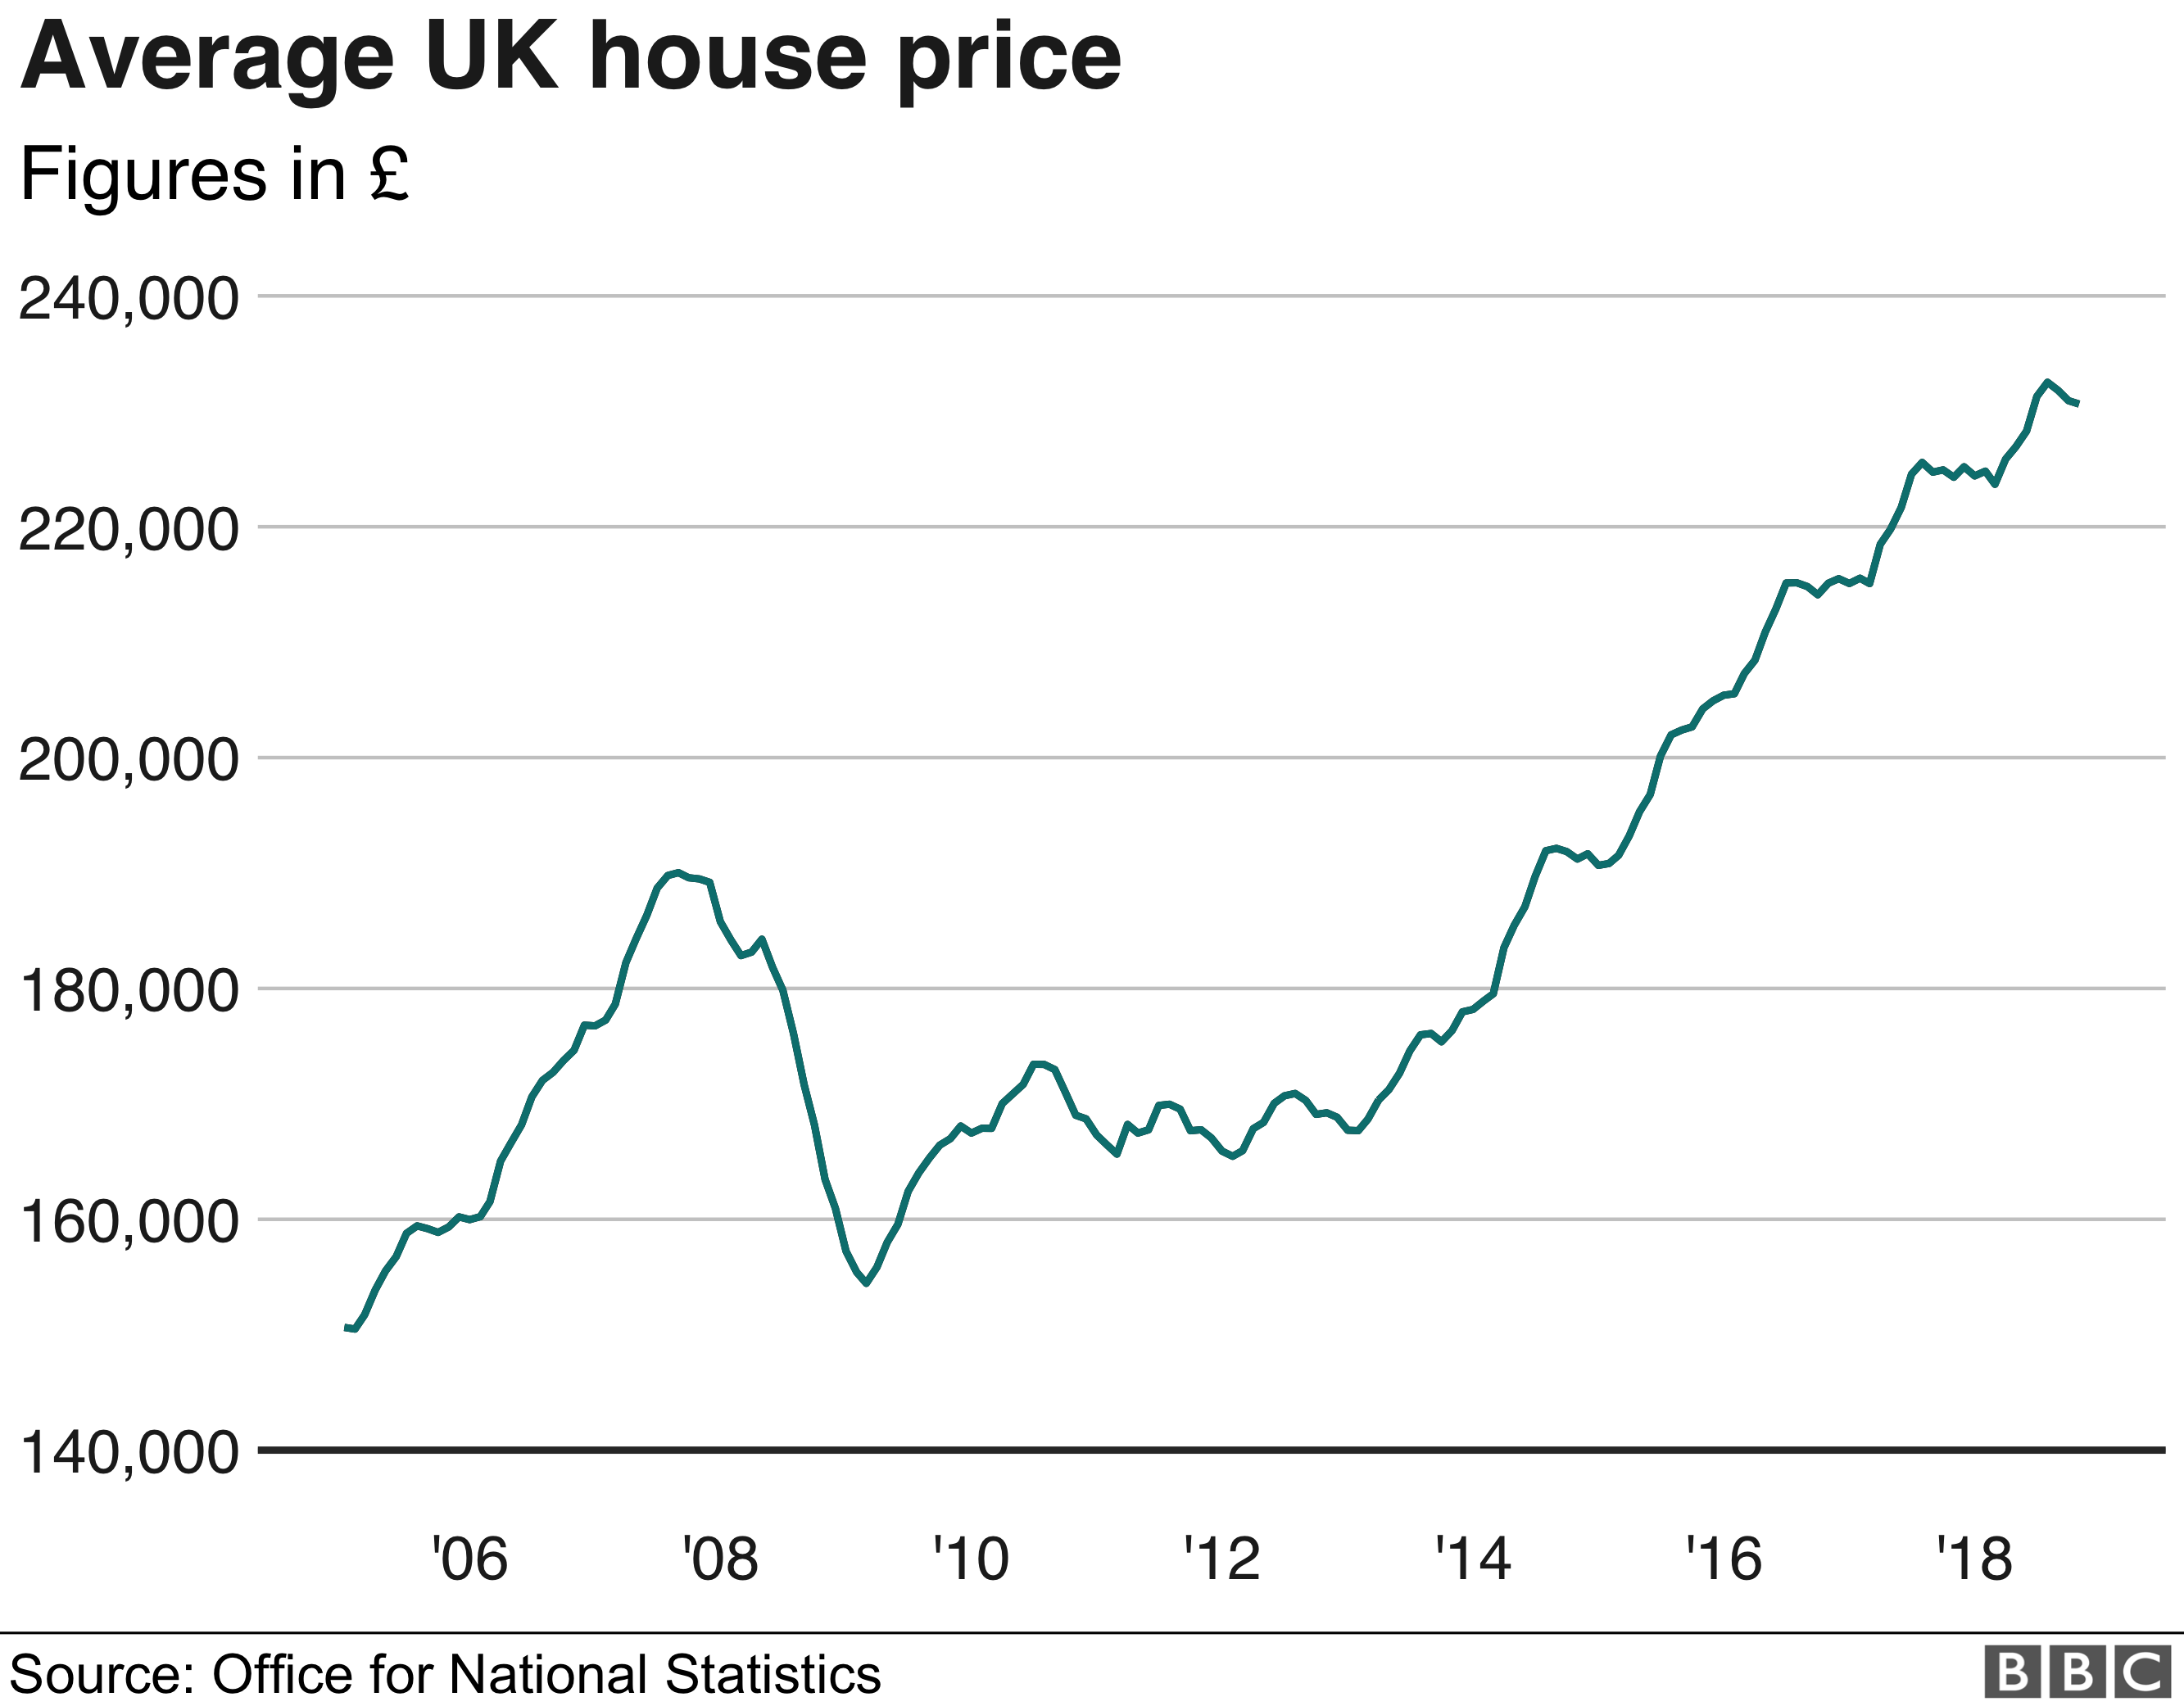 Average UK house price graph